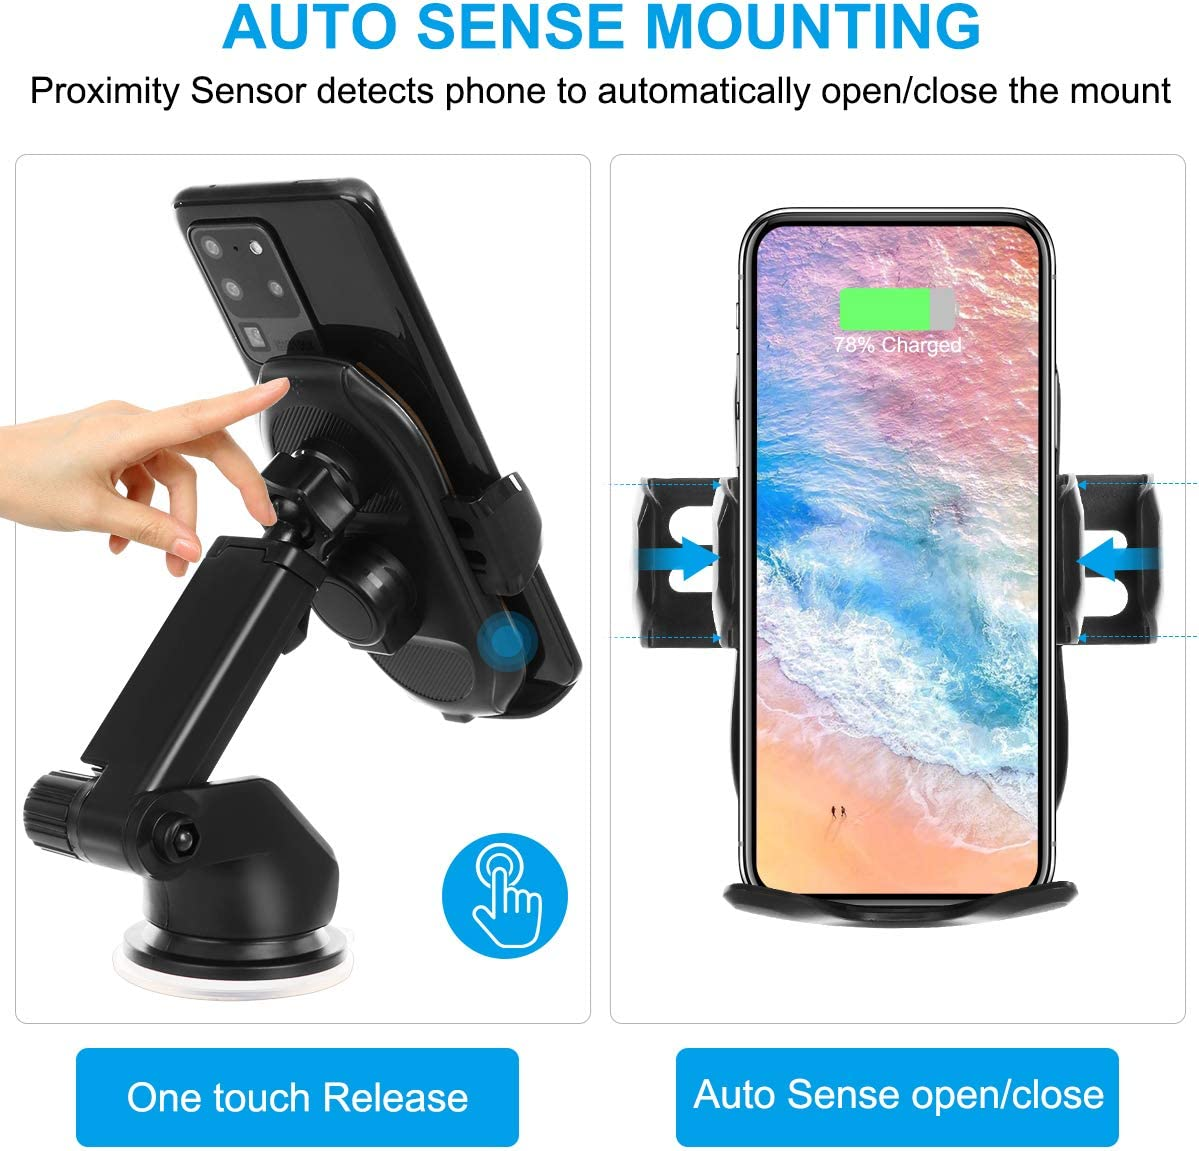 Glod HonShoop Auto-Clamping 10W 7.5W Fast Charging Car Phone Holder Air Vent Compatible with iPhone X//XR//Xs//Xs Max//8//8 Plus ect Wireless Car Charger